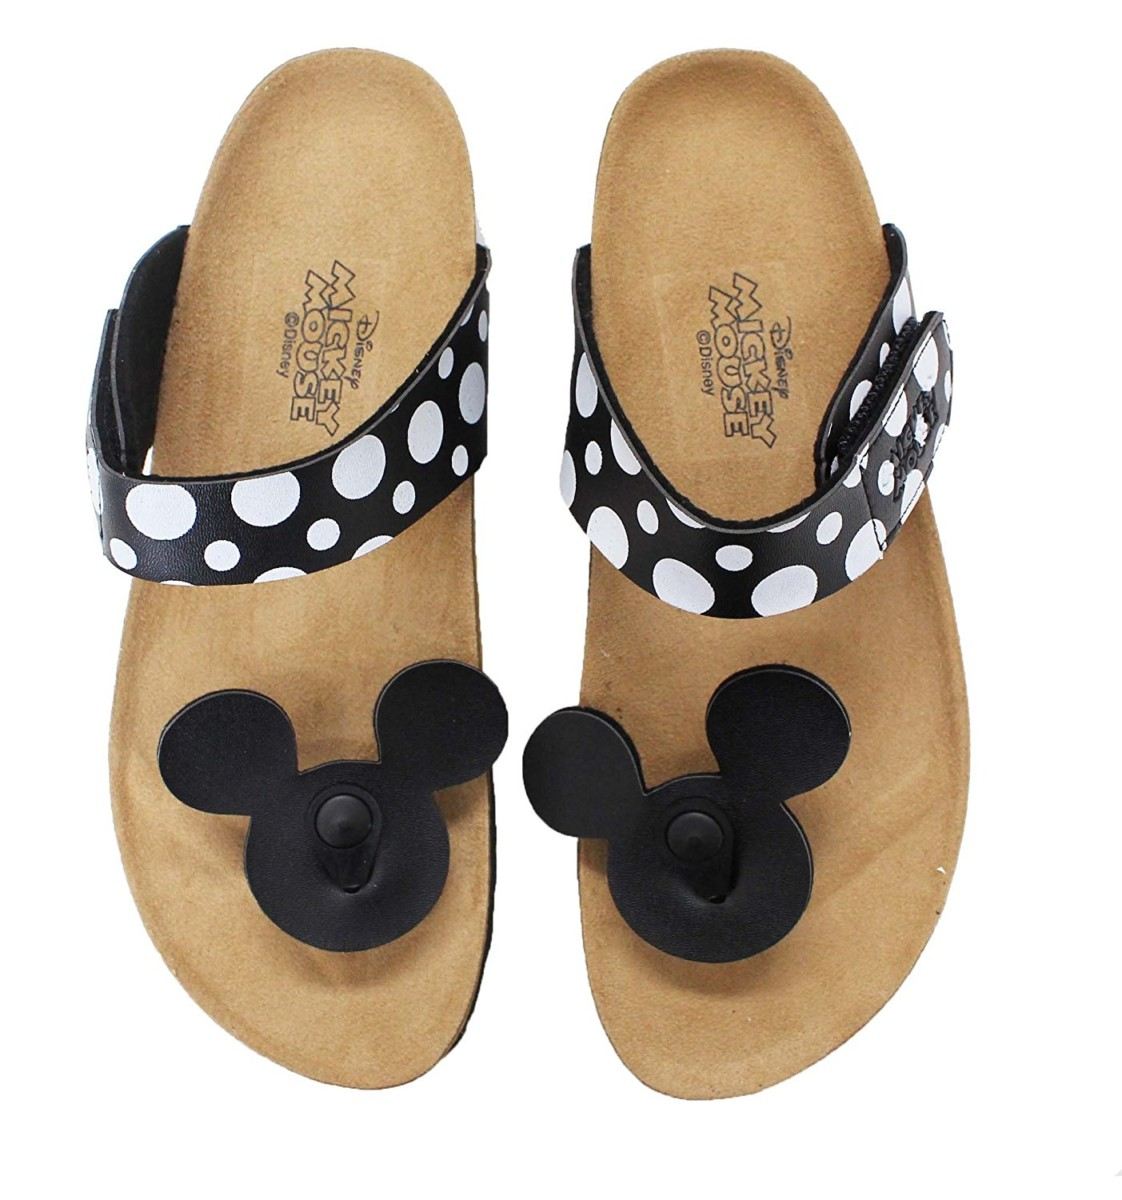 Disney Style For Your Feet 3